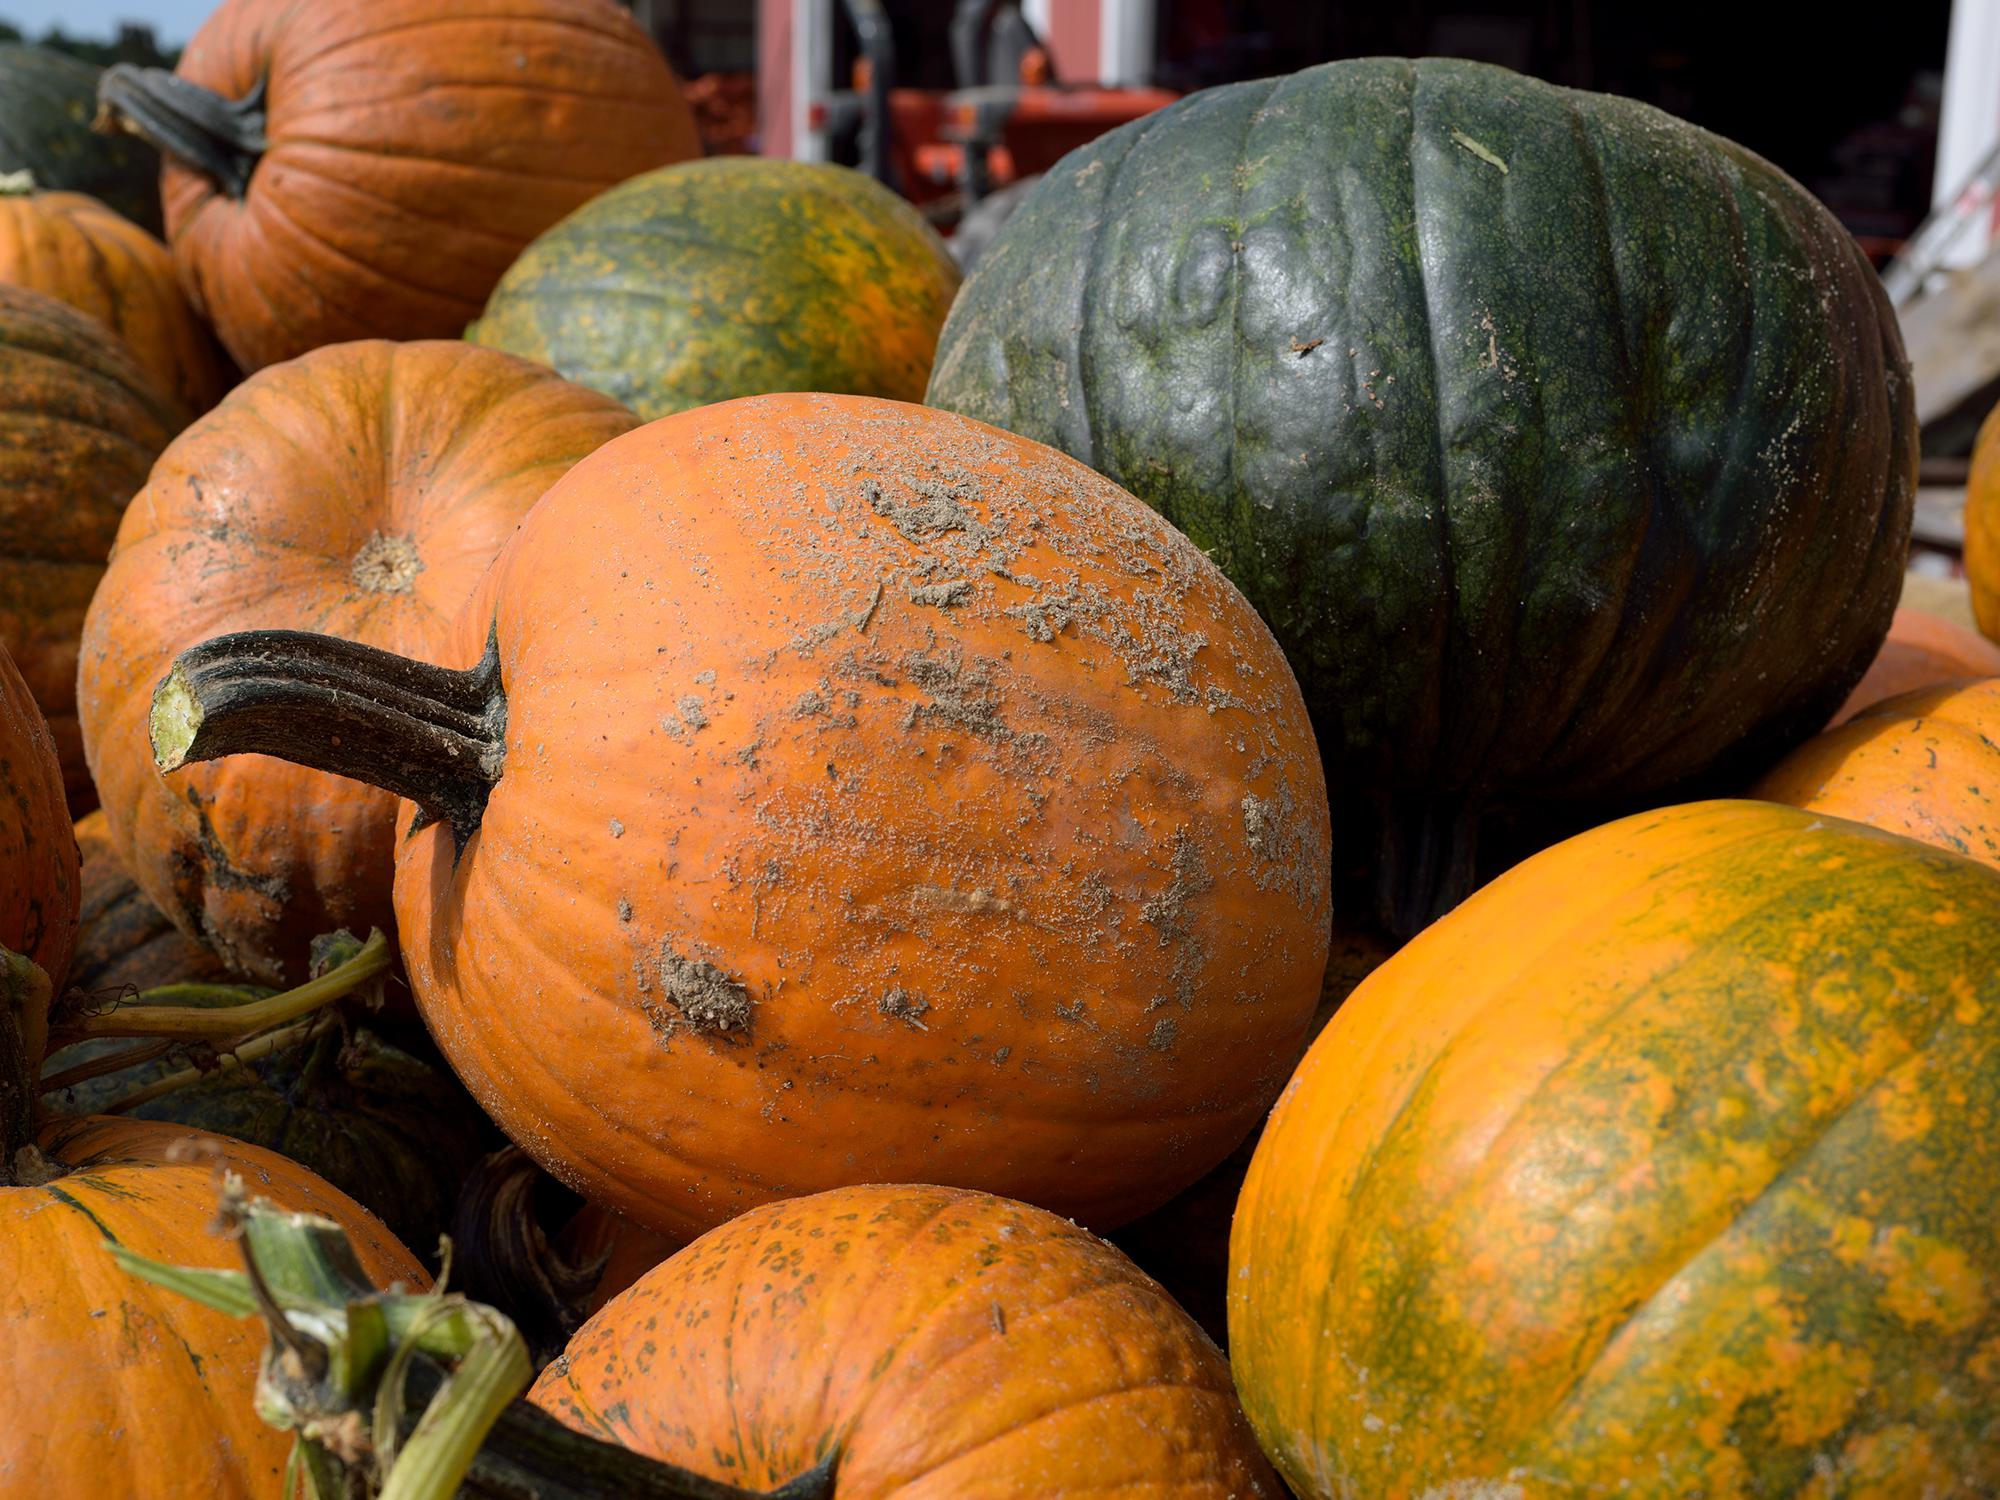 Wet weather during the growing season delayed pumpkin harvest and increased disease pressure for some Mississippi growers. These pumpkins were displayed at Mitchell Farms in Collins, Mississippi on Oct. 20, 2014. (Photo by MSU Ag Communications/Kevin Hudson)